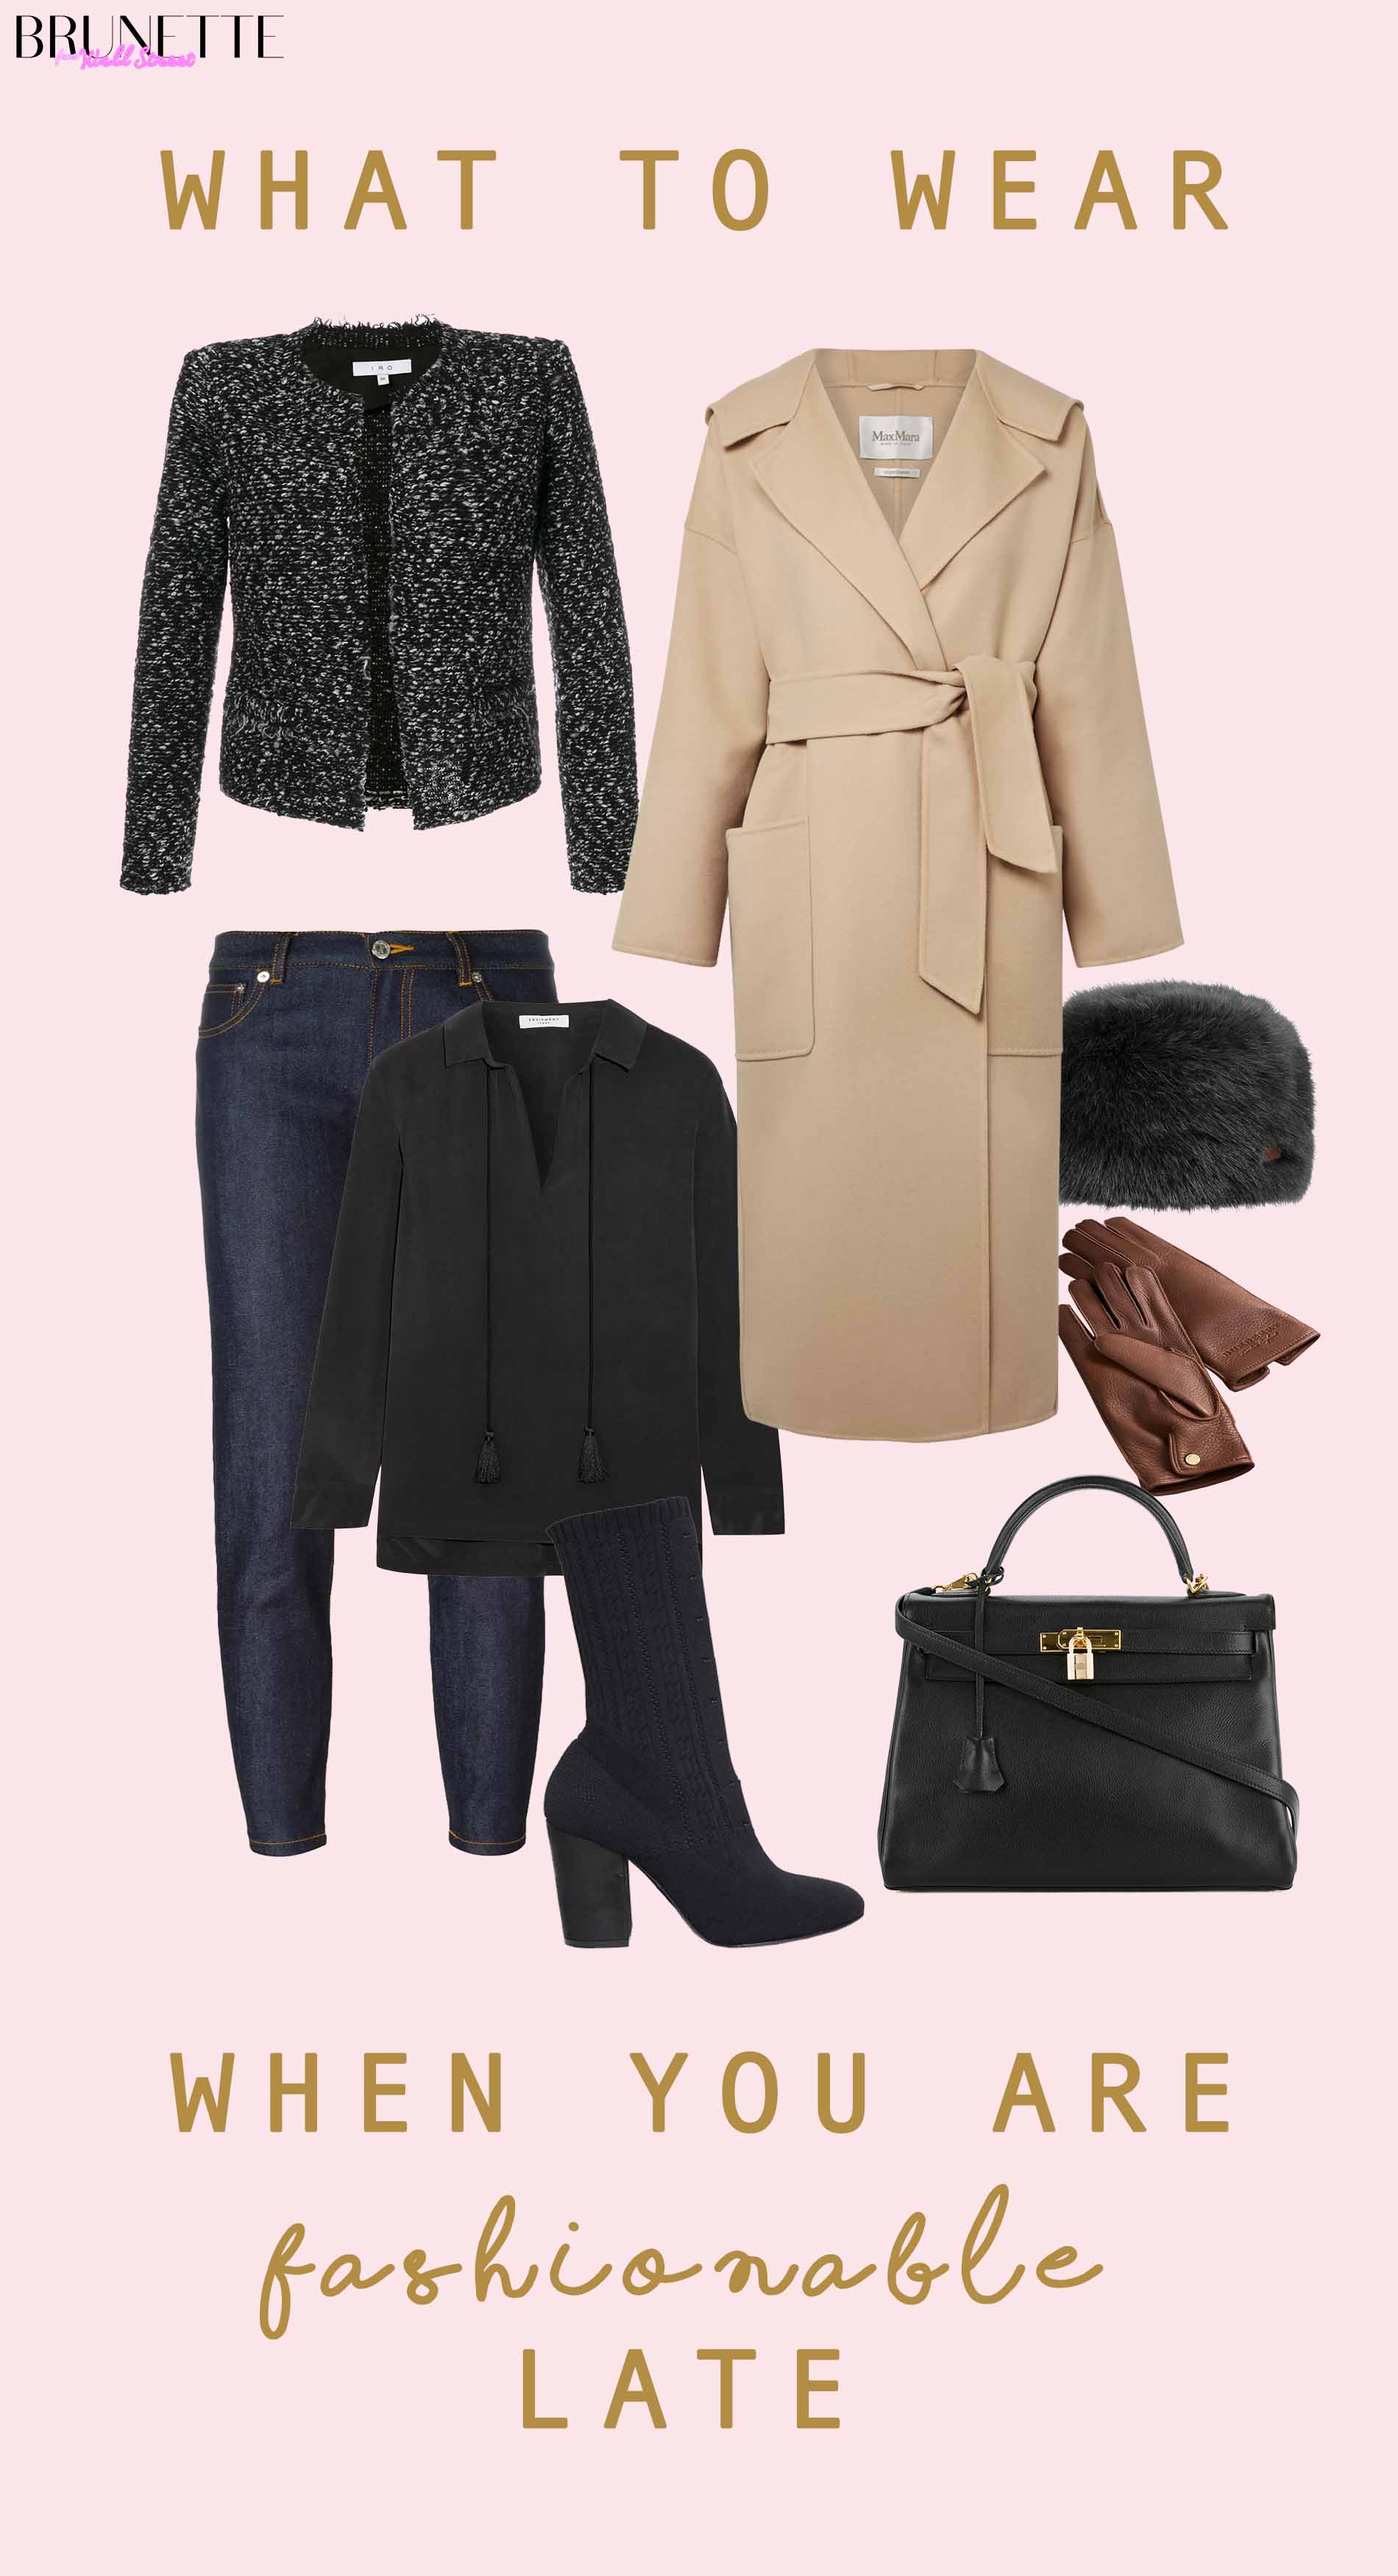 Winter outfit with text overlay What to wear when you are fashionable late